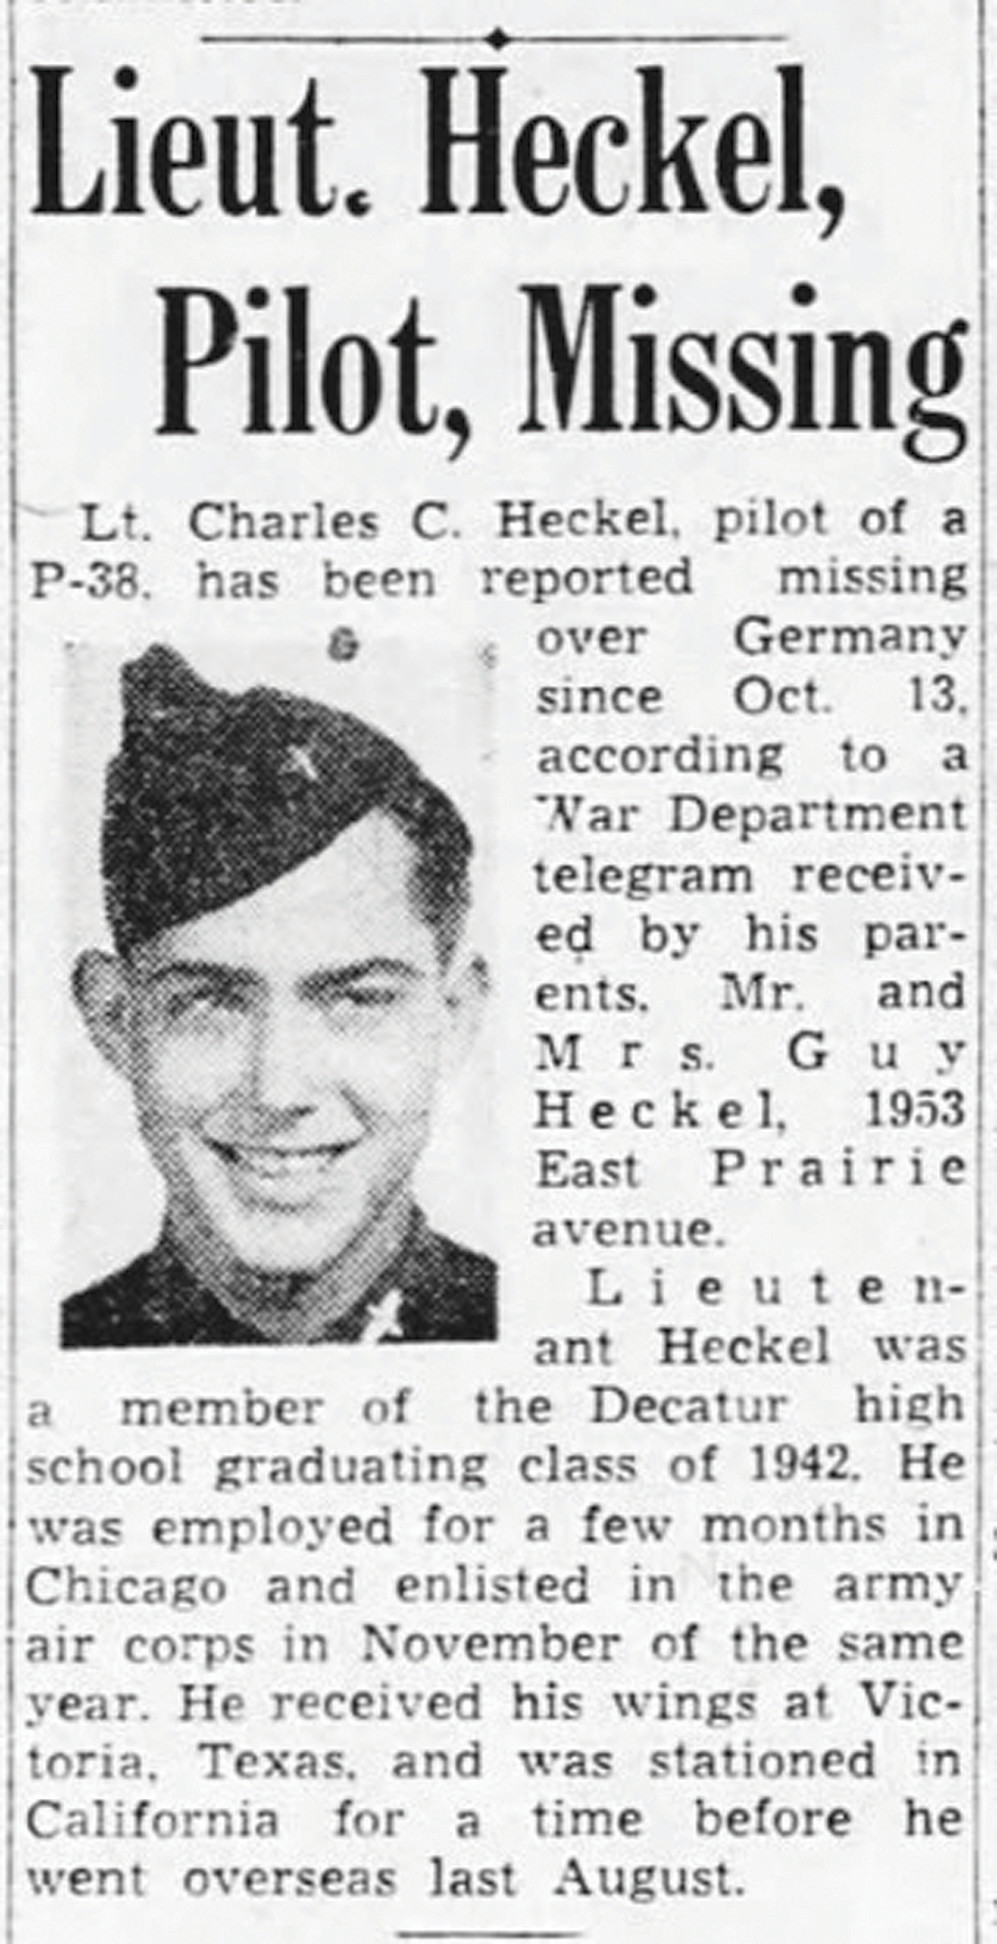 Heckel became a POW after flying with the 9th Tactical Air Force's 474th Fighter Group in October 1944.